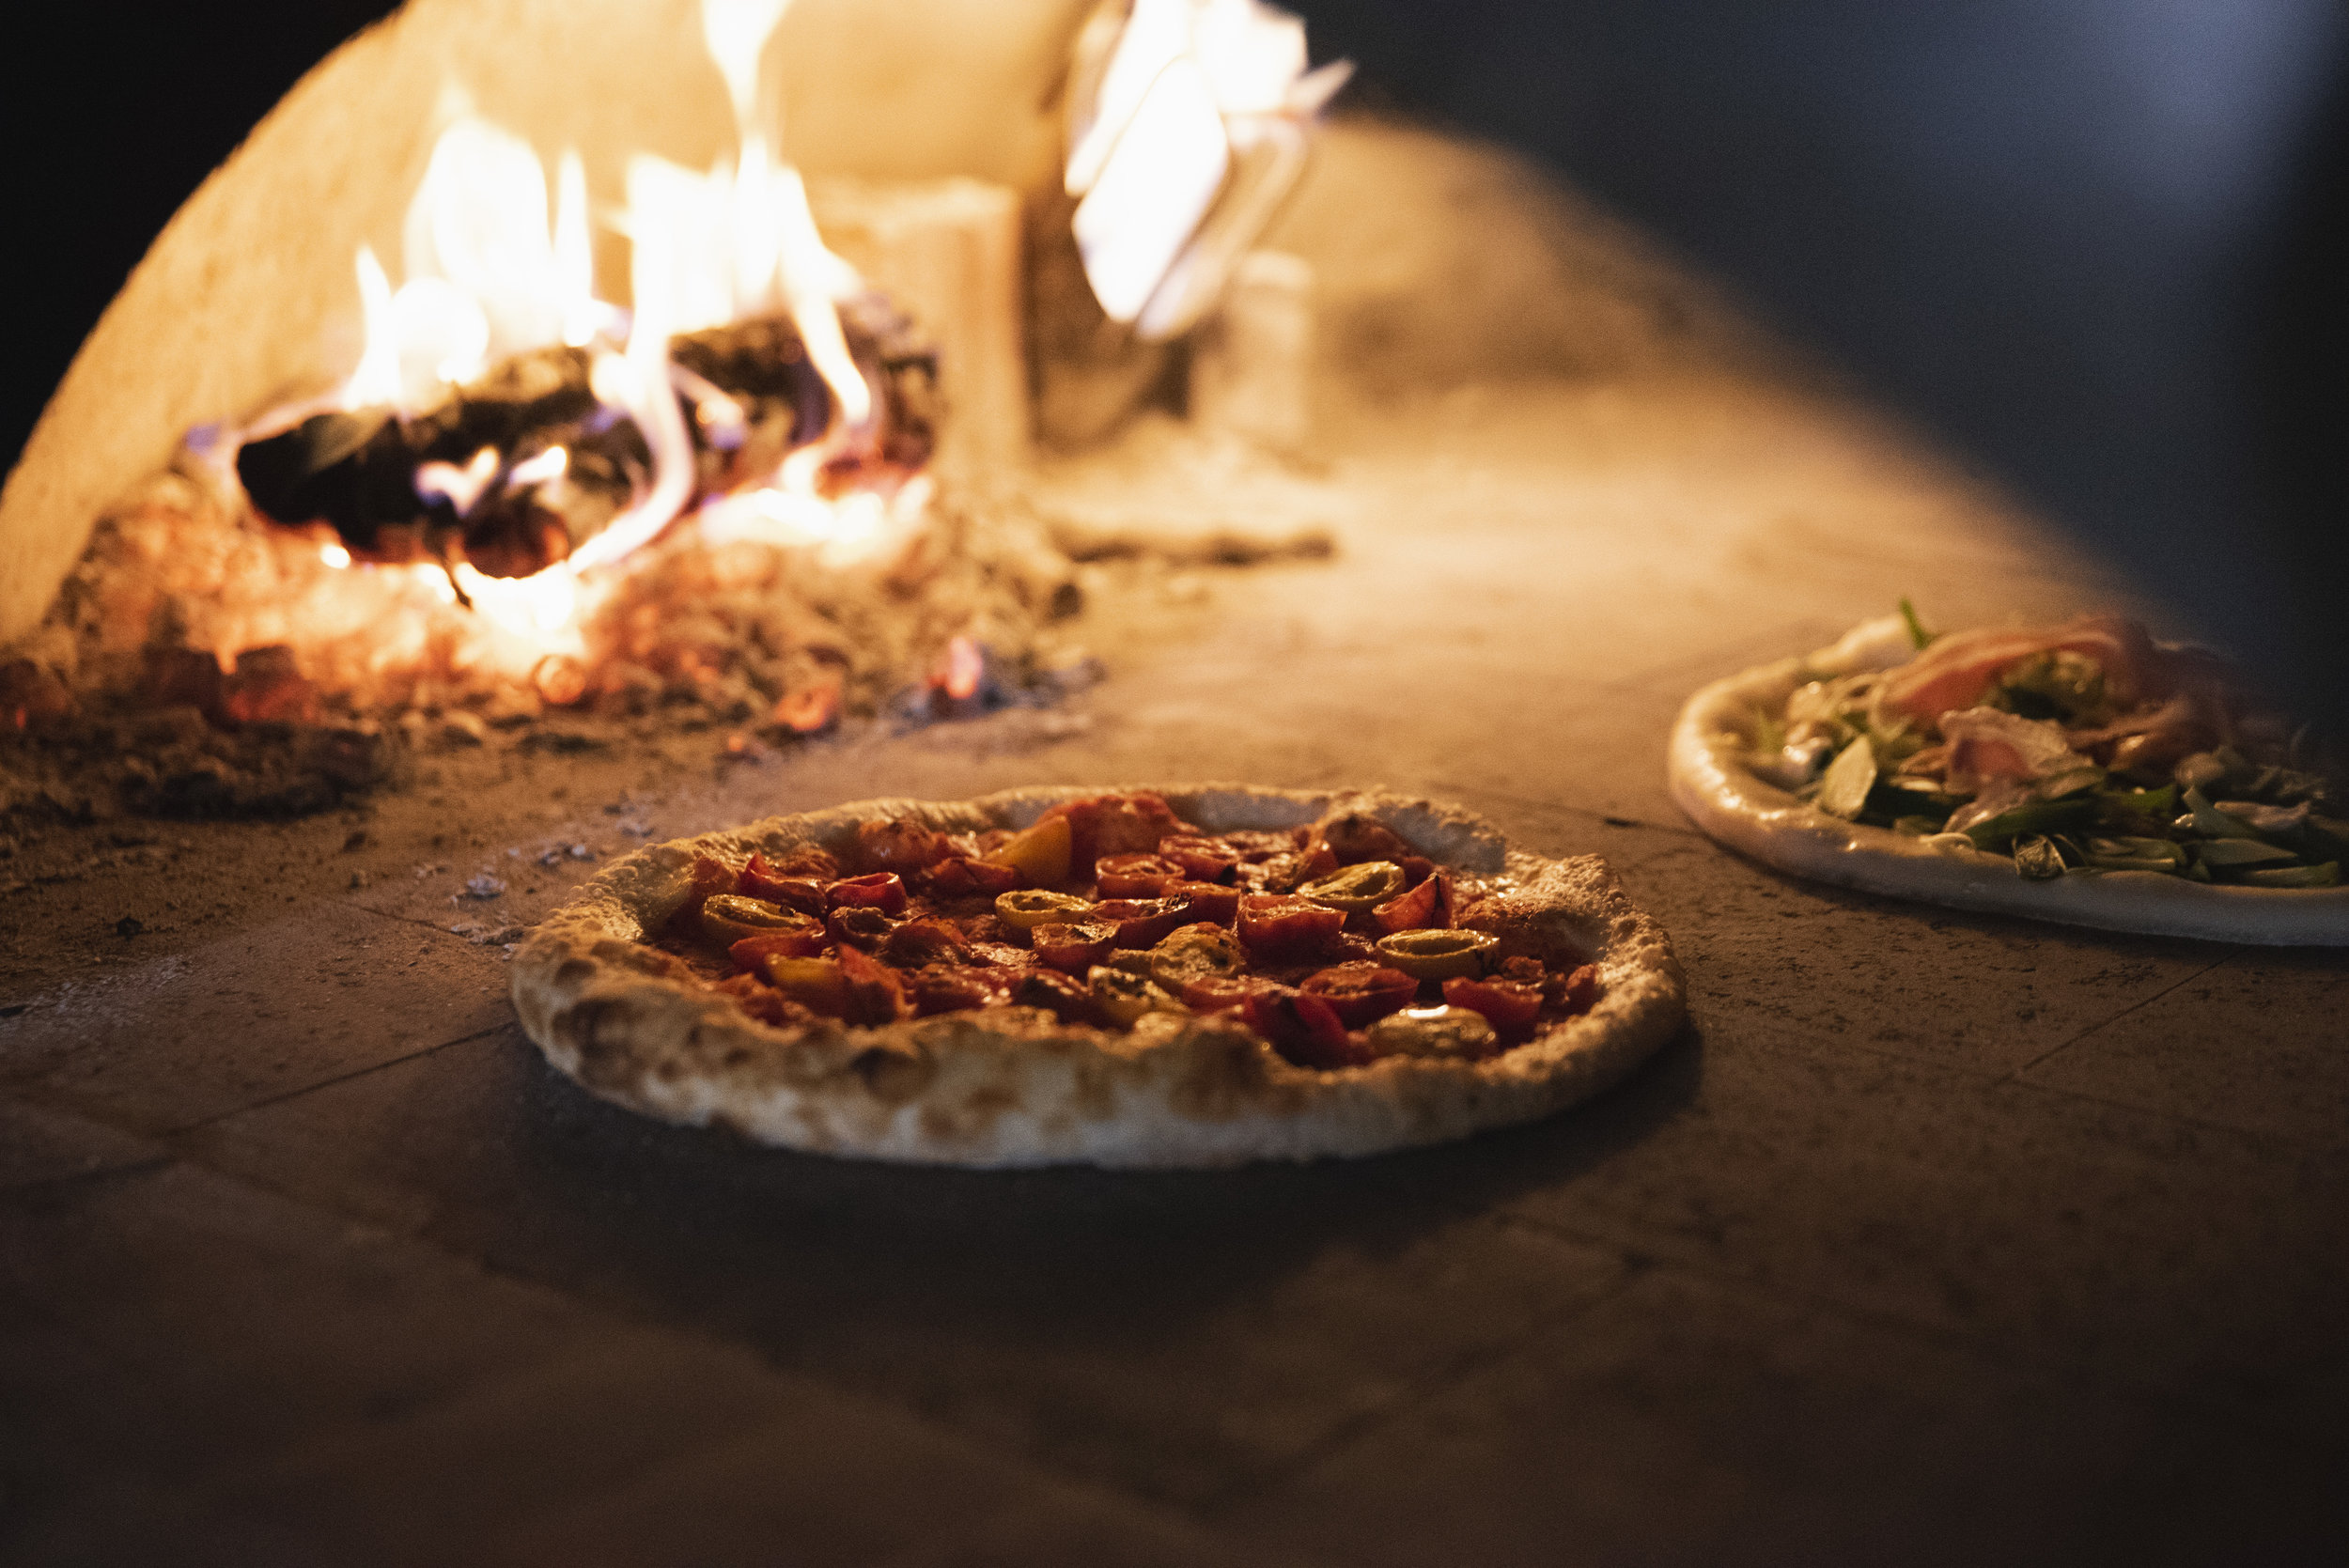 Pizza cooked in our wood-burning oven.